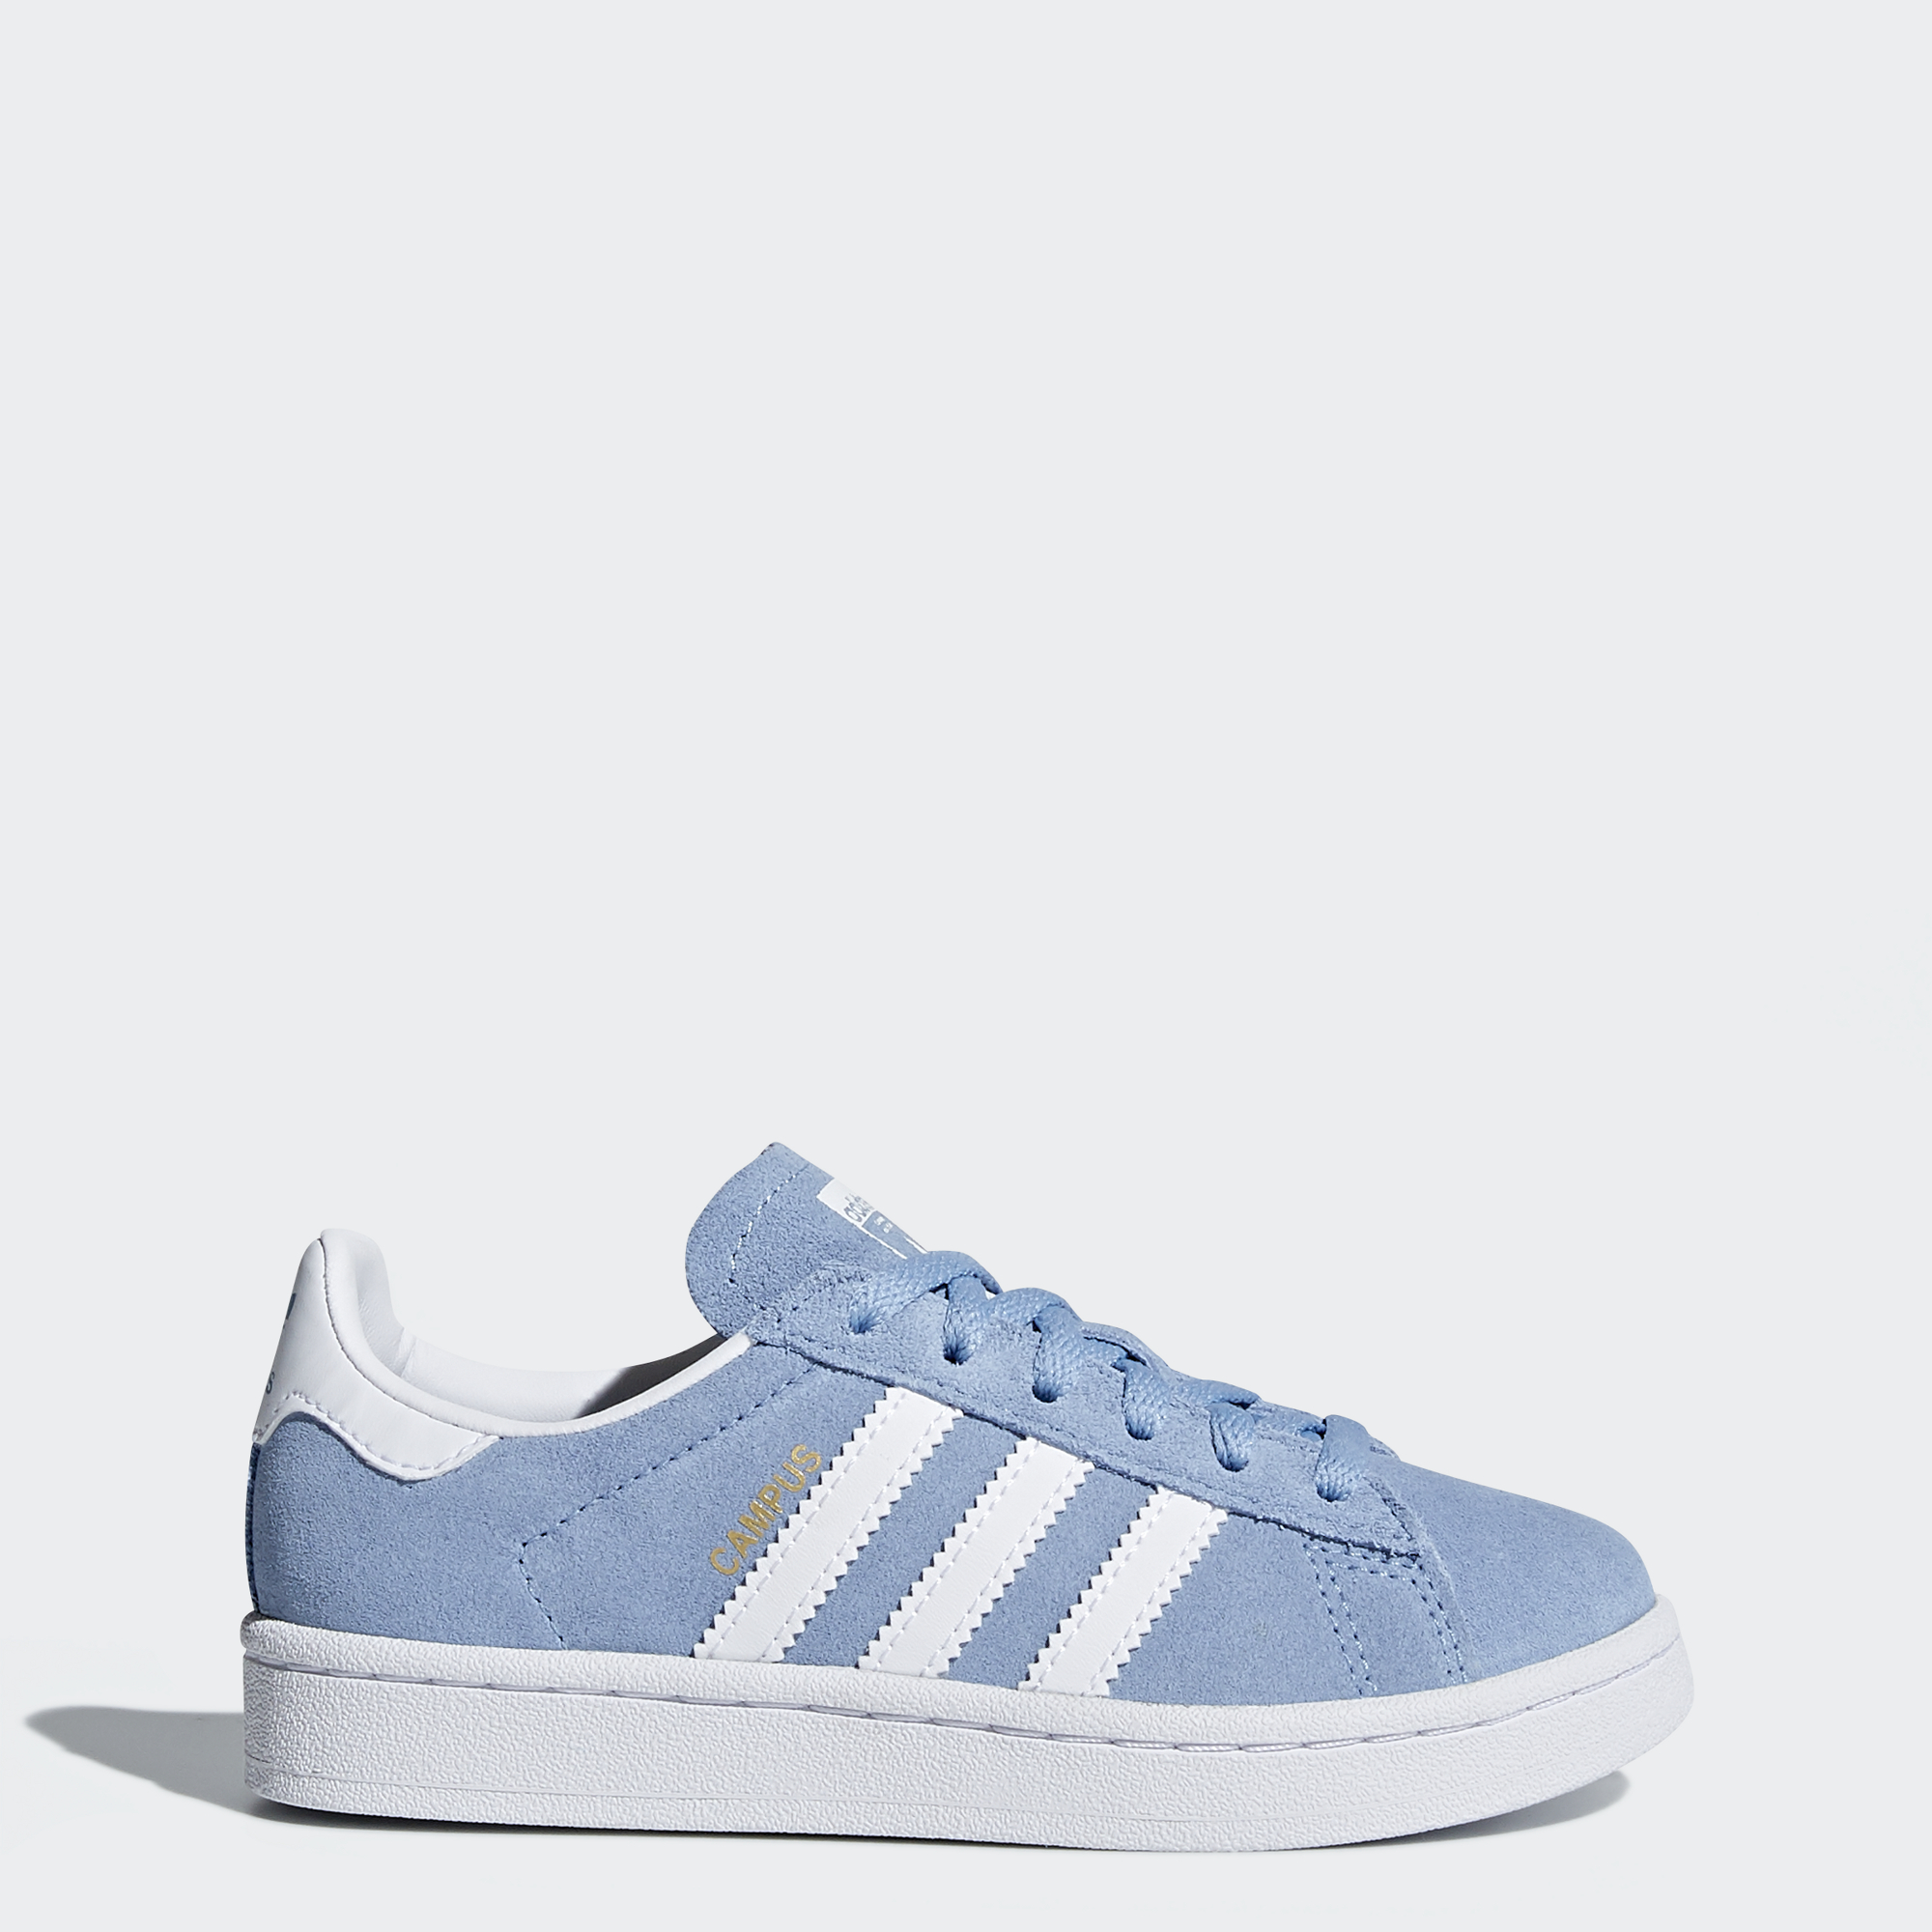 63c07221ce6 Buy cheap adidas originals shoes womens >Up to OFF55% Discounts